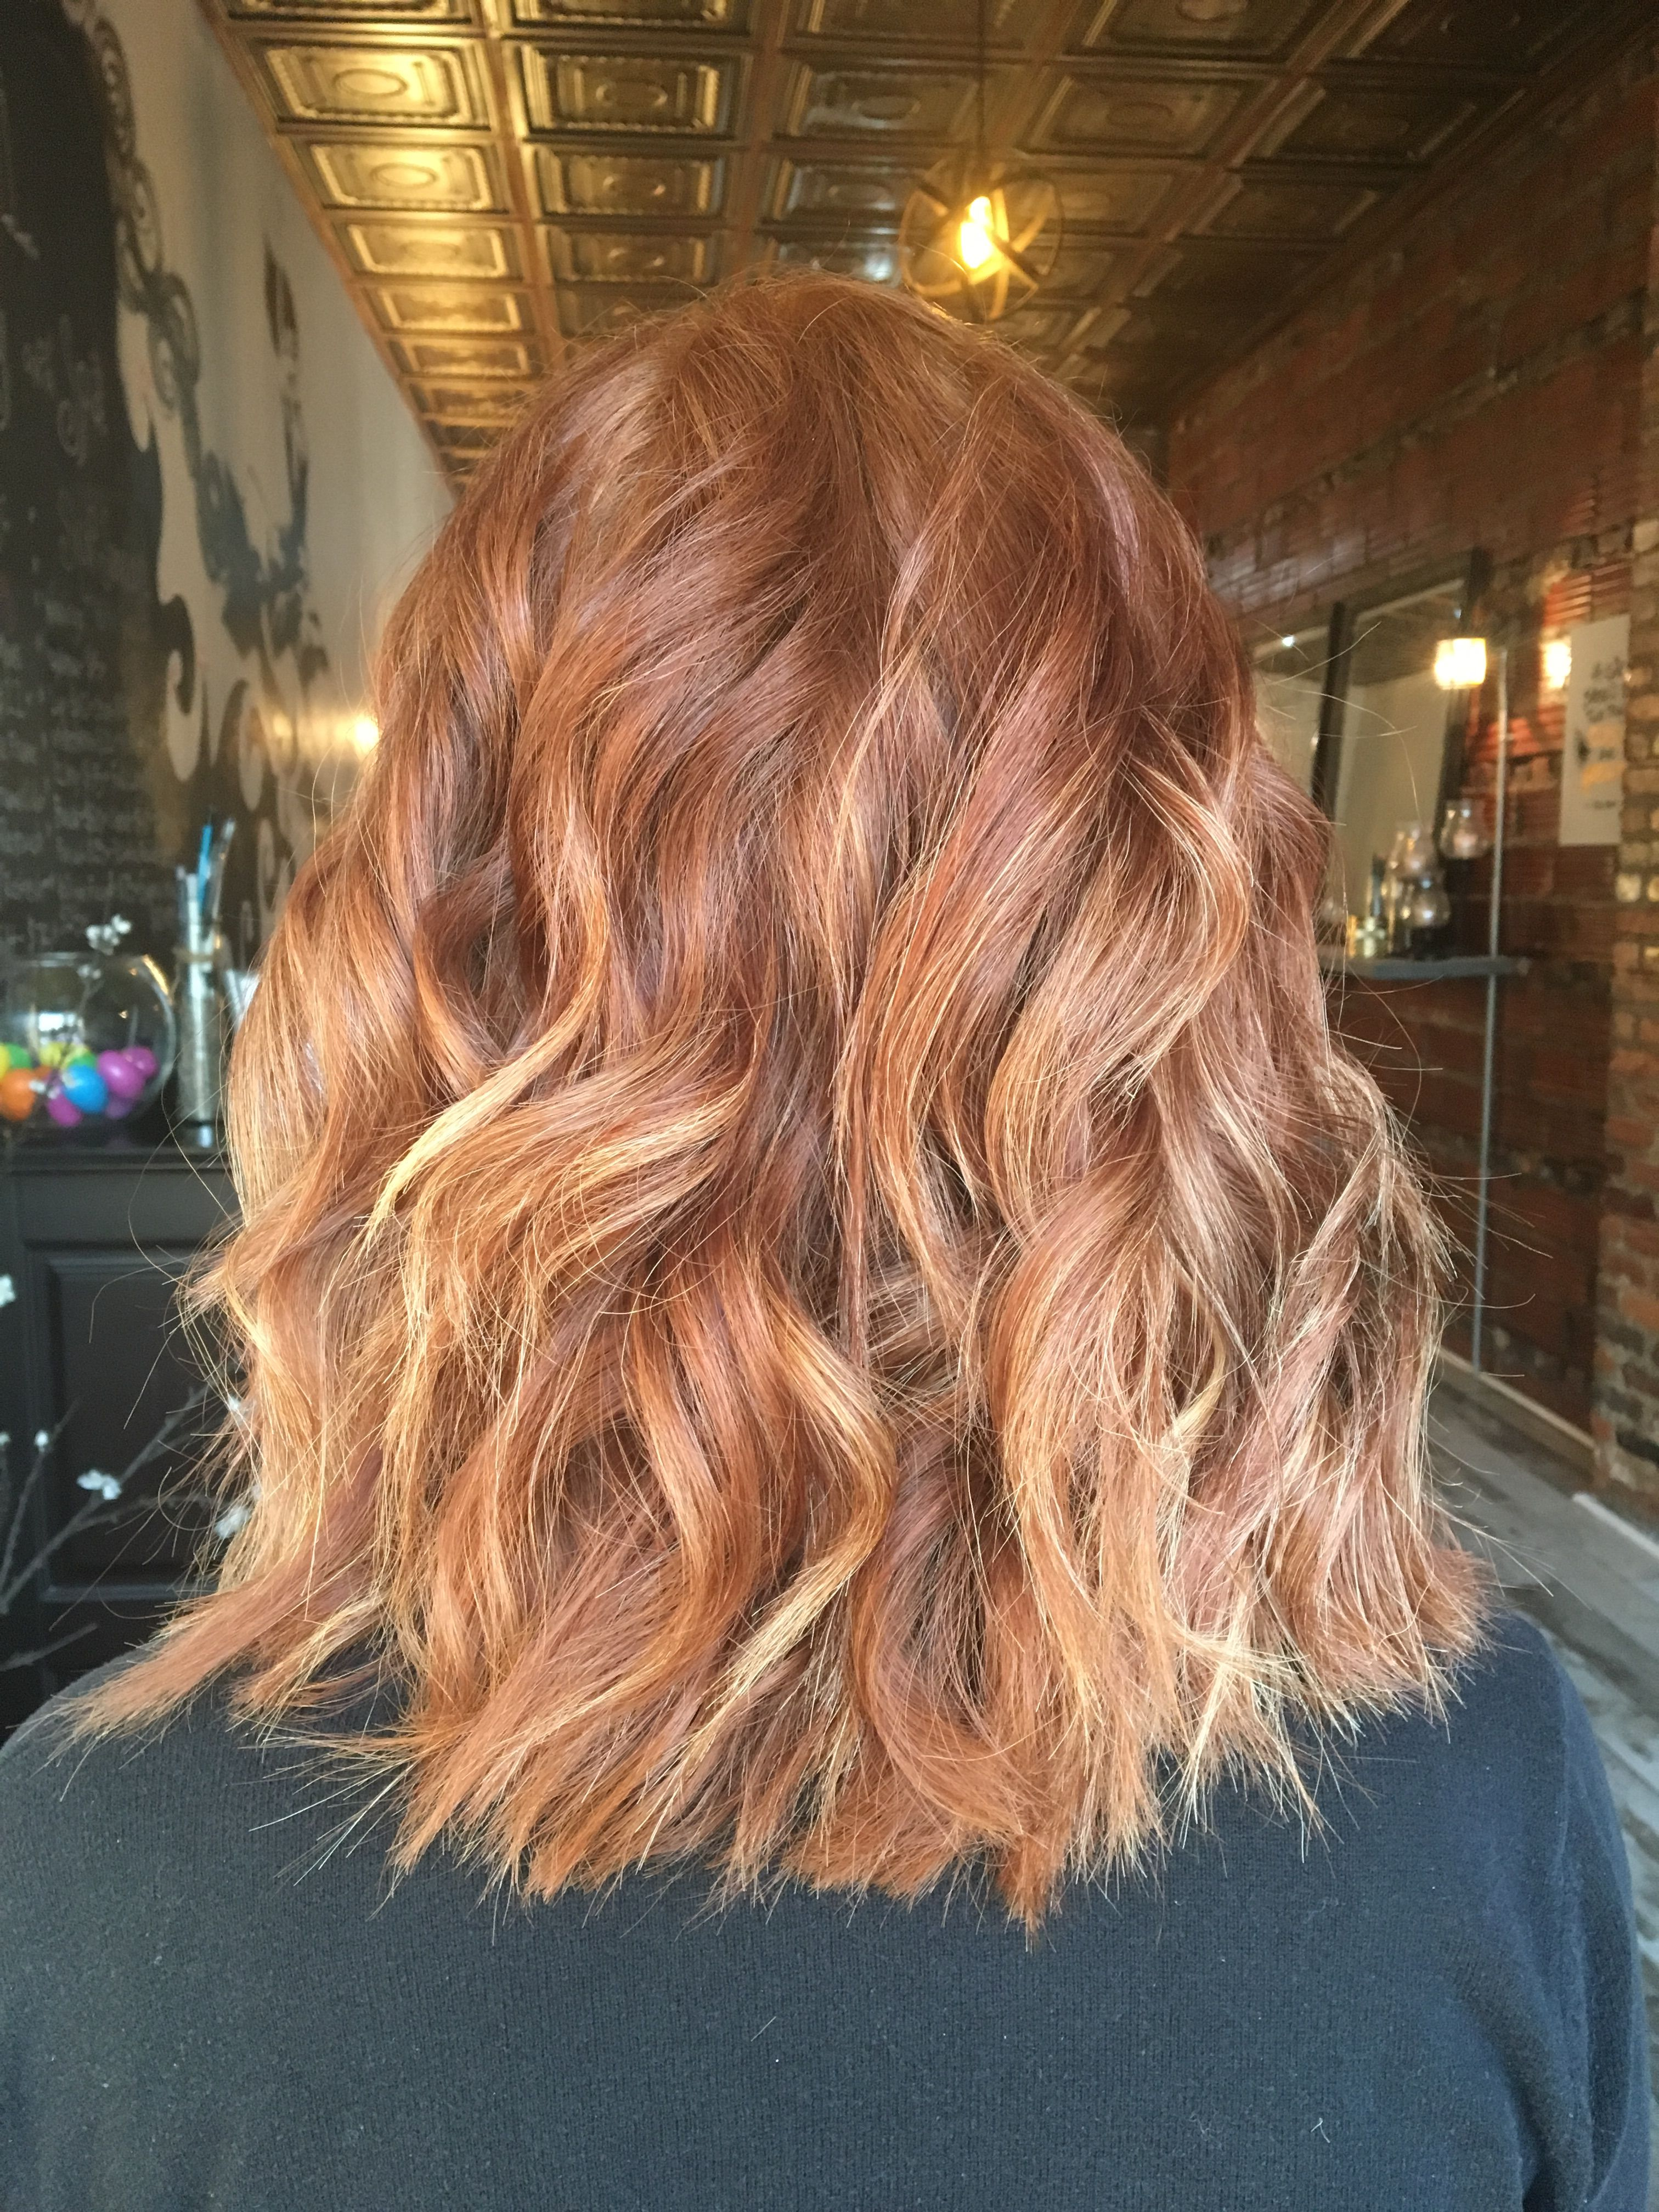 Natural Red Hair With Subtle Blonde Bayalage Highlights My Style